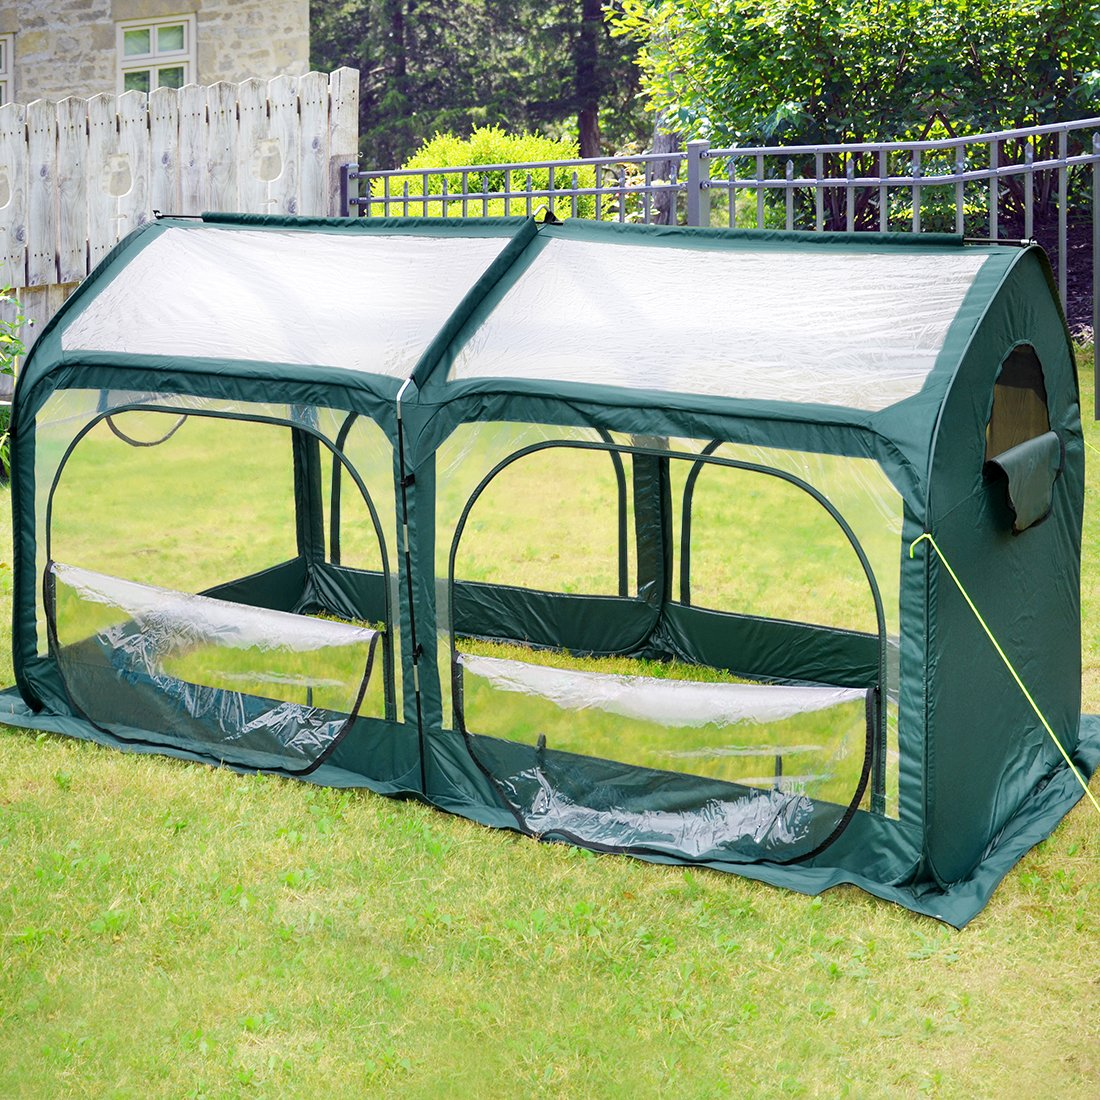 Green Quictent Pop up Greenhouse Passed SGS Test Eco-friendly Fiberglass Poles Overlong Cover Six Stakes 98 x49 x53  Mini Portable Green House (Green)